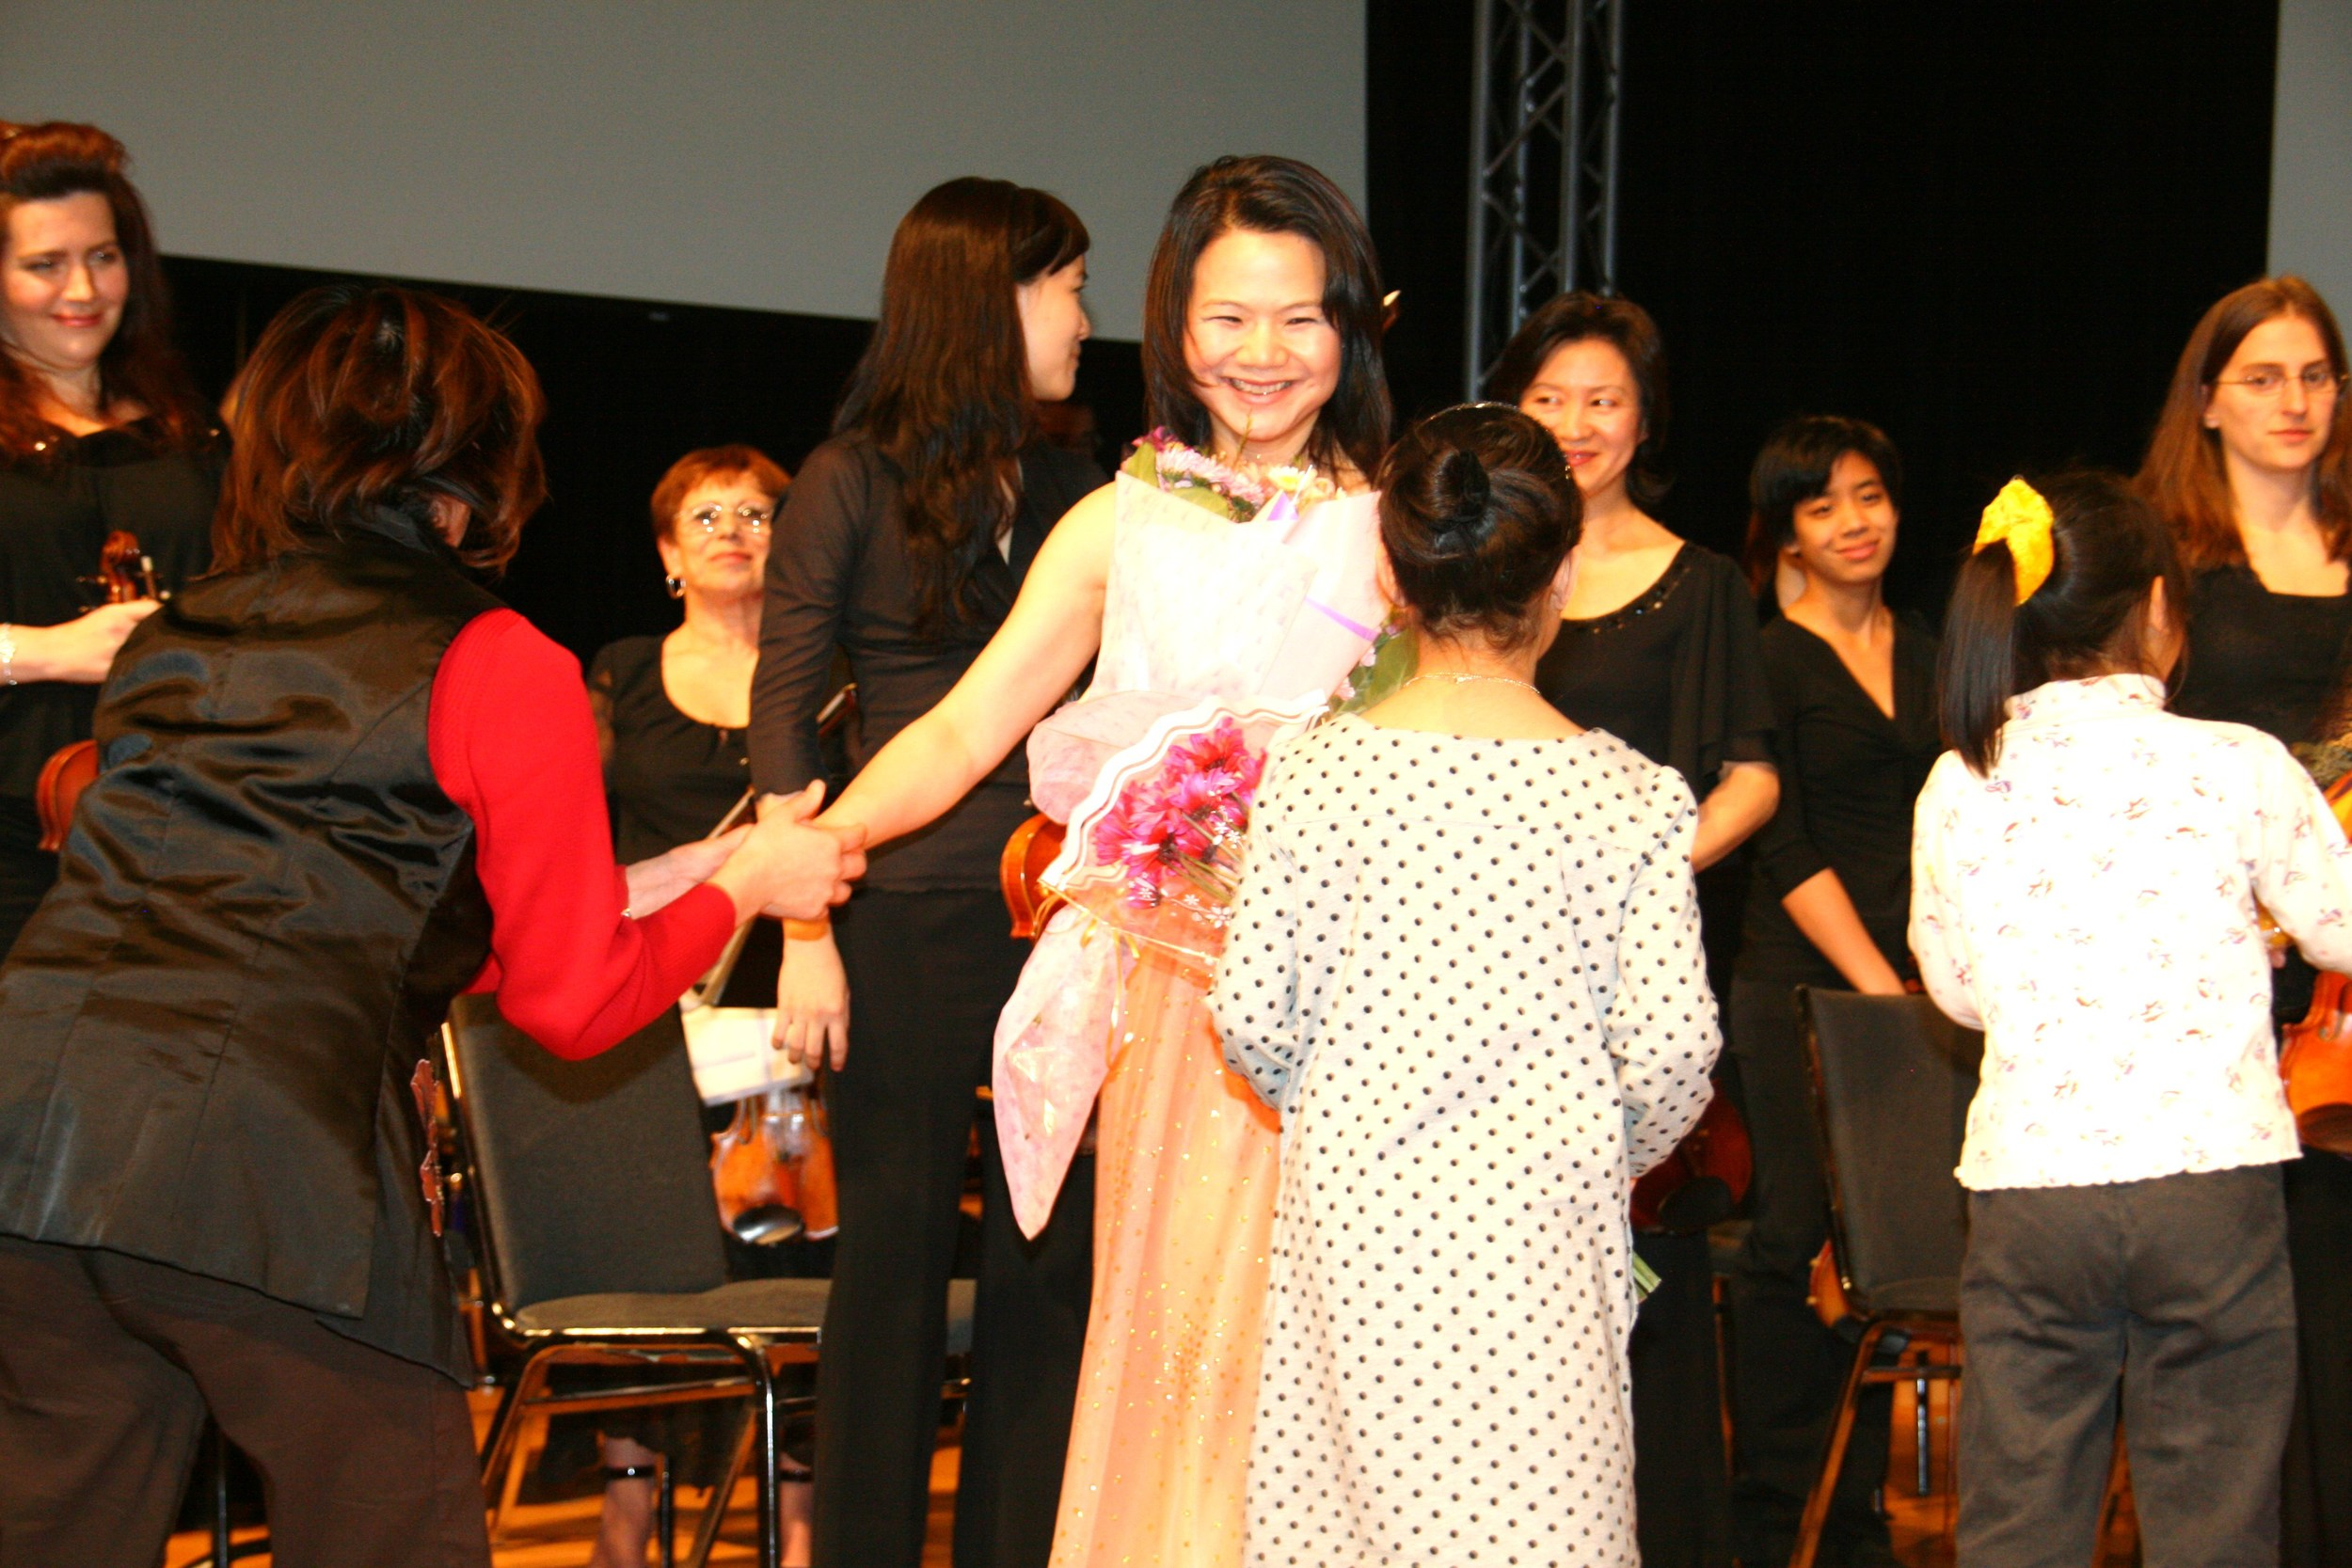 Stella Xu receiving flowers from her many admirers